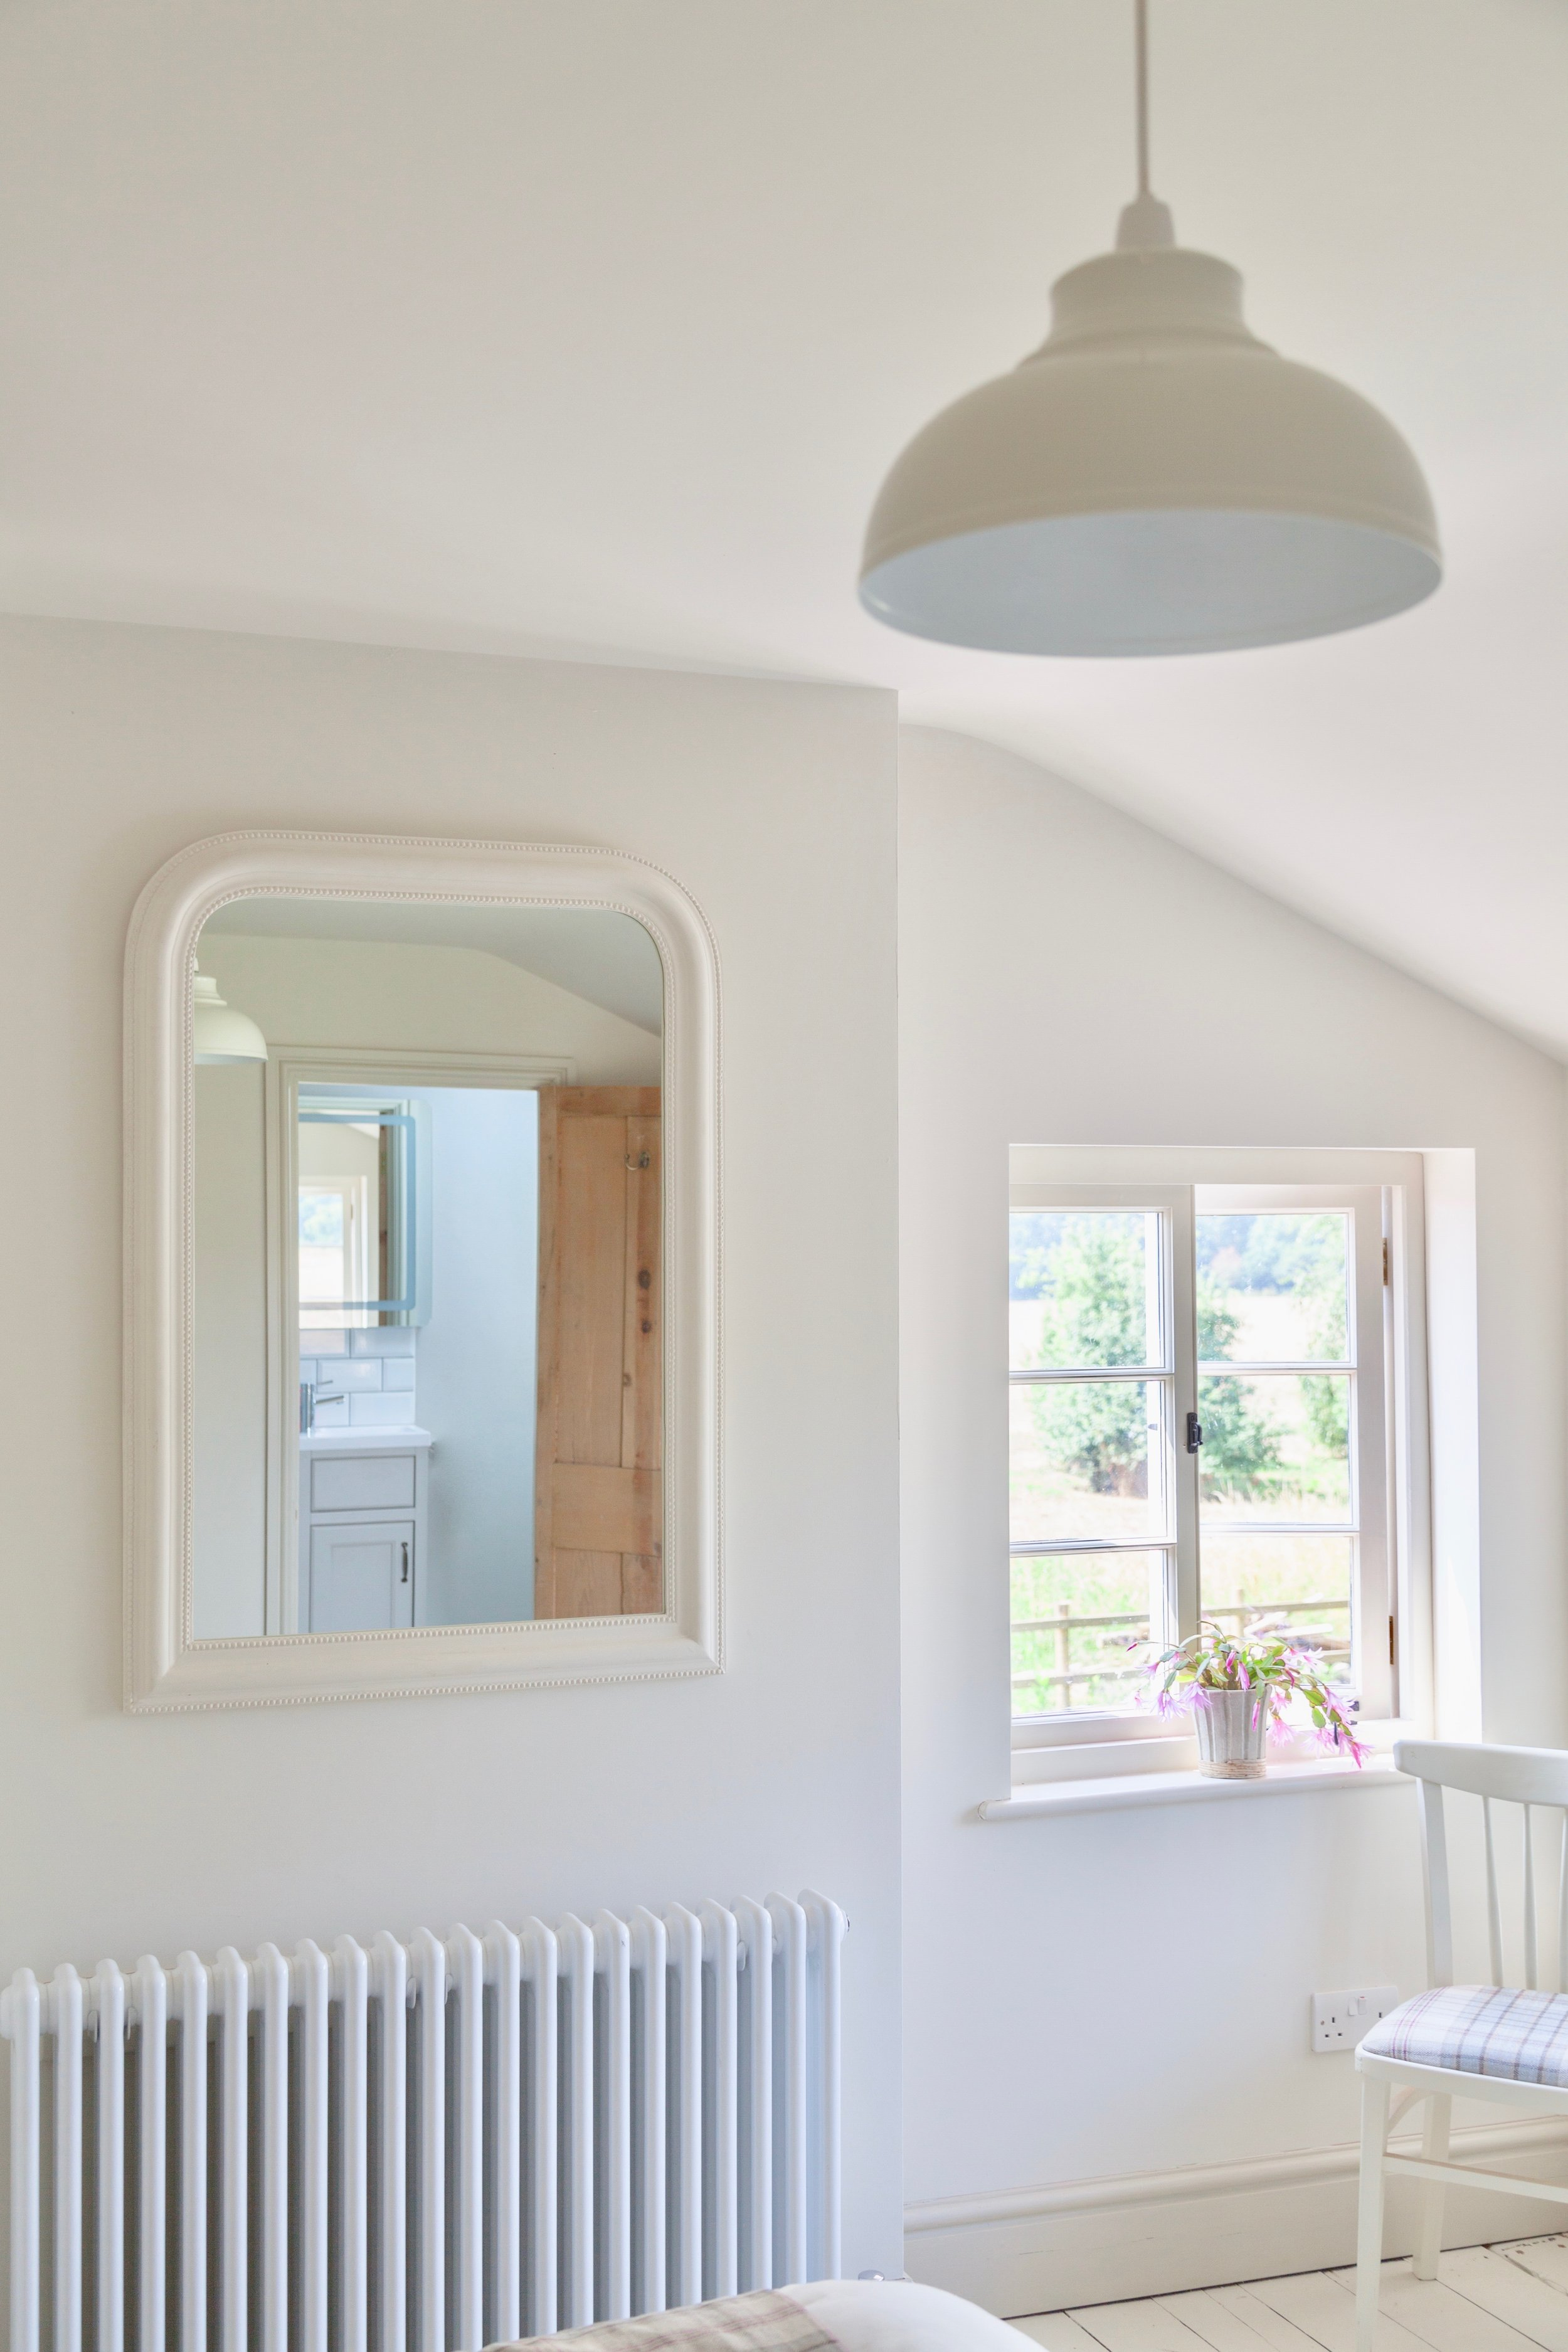 Herefordshire Farmhosue Project - Designed by Hannah Llewelyn Interior Design - hlinteriors.co.uk27.jpg